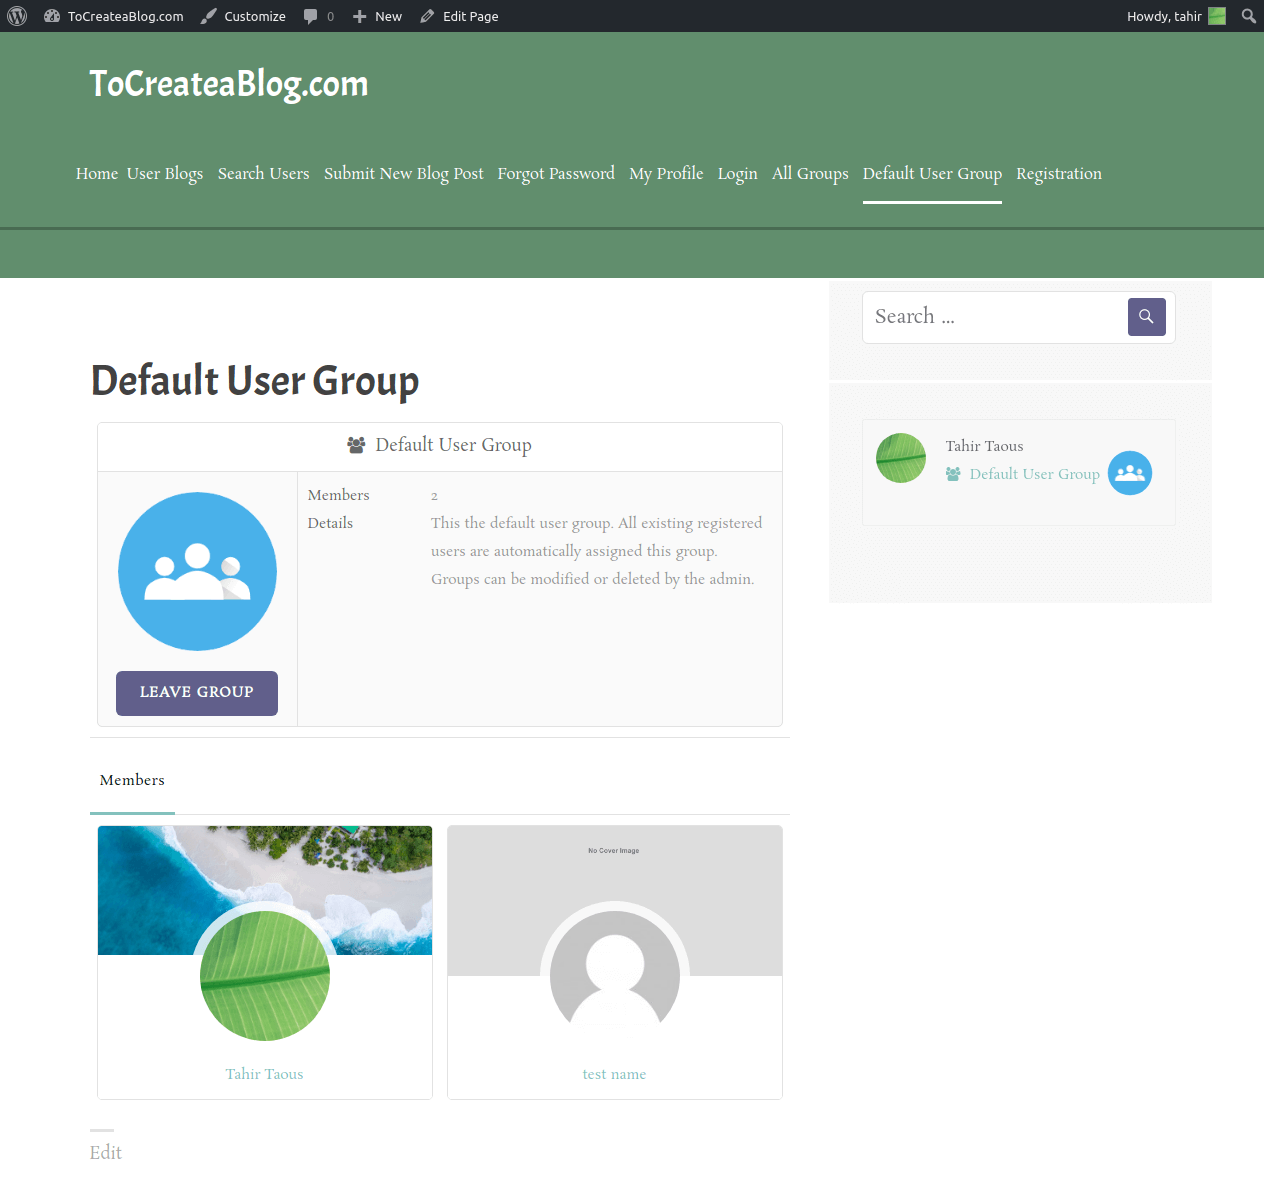 Default User Group page ProfileGrid